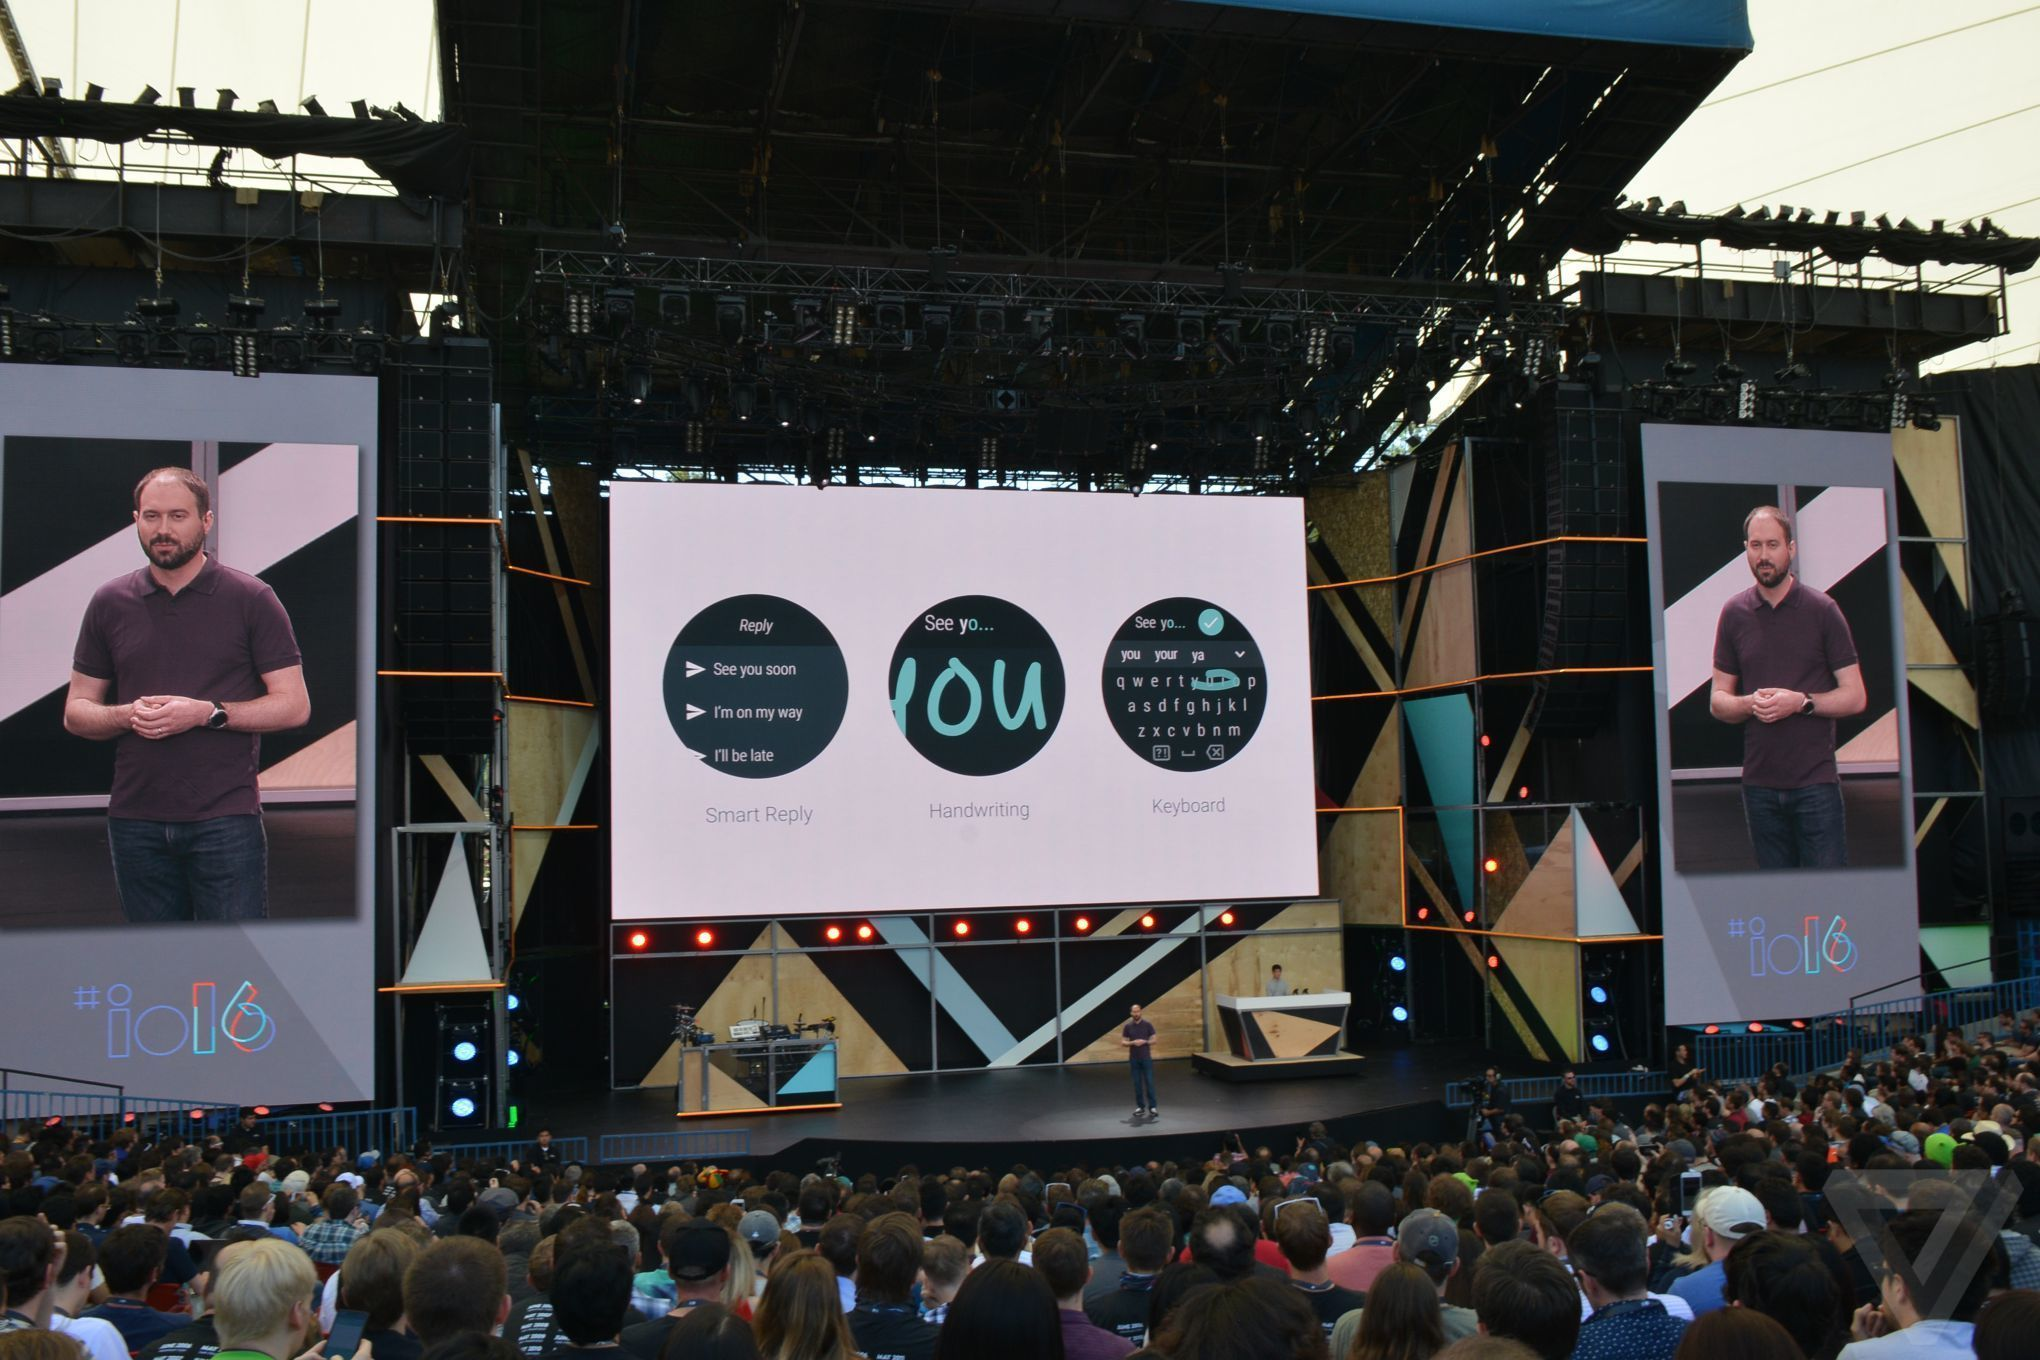 The 10 biggest announcements from Google I/O 2016 | The Verge